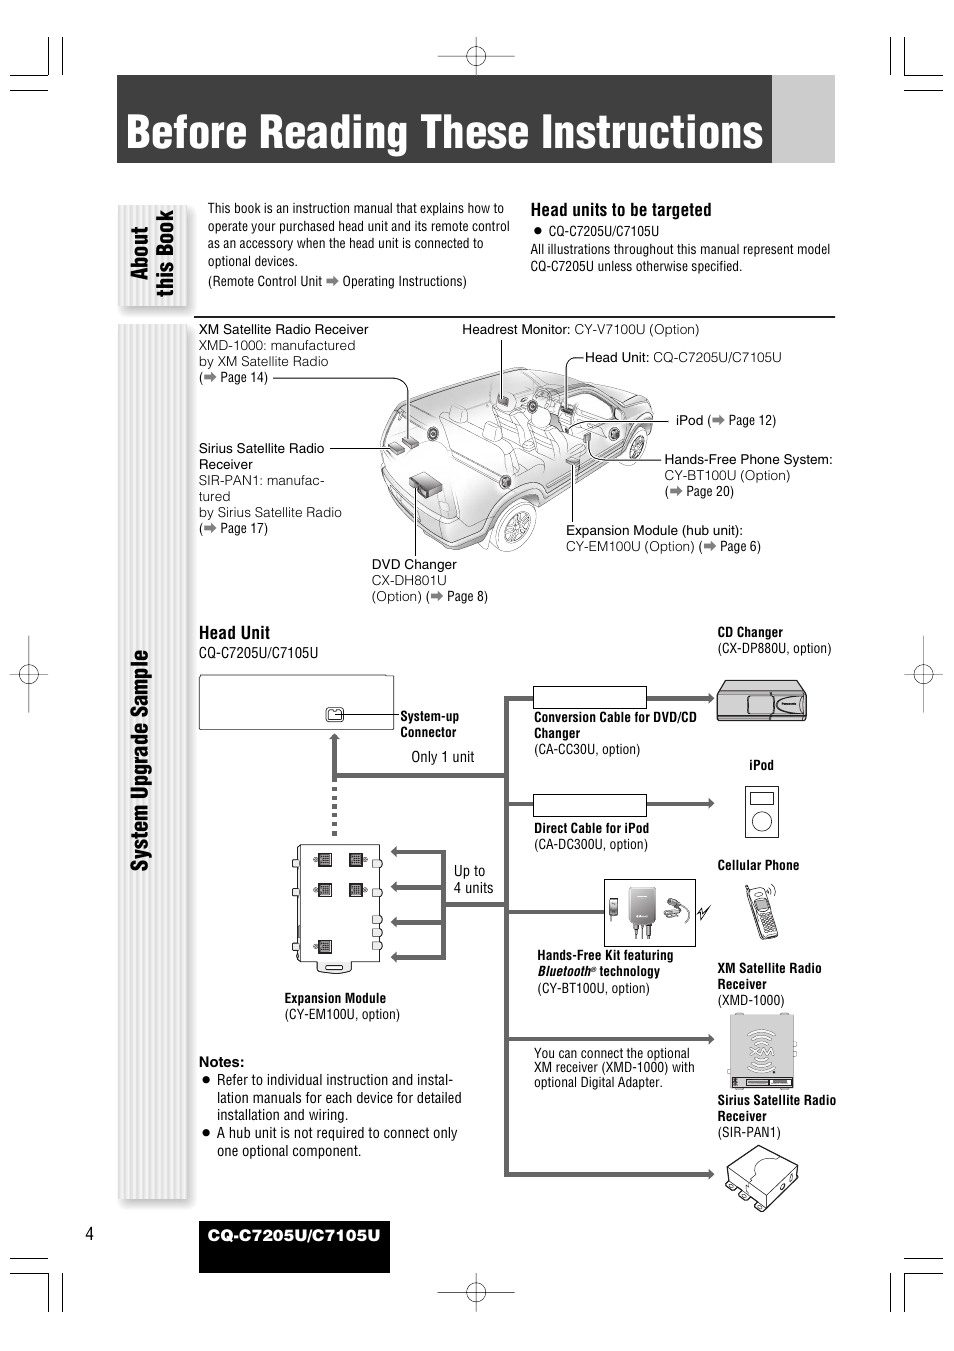 Panasonic Cq Wiring Diagram And Schematics Cqcp137u Before Reading These Instructions About This Book System Upgrade C7105u